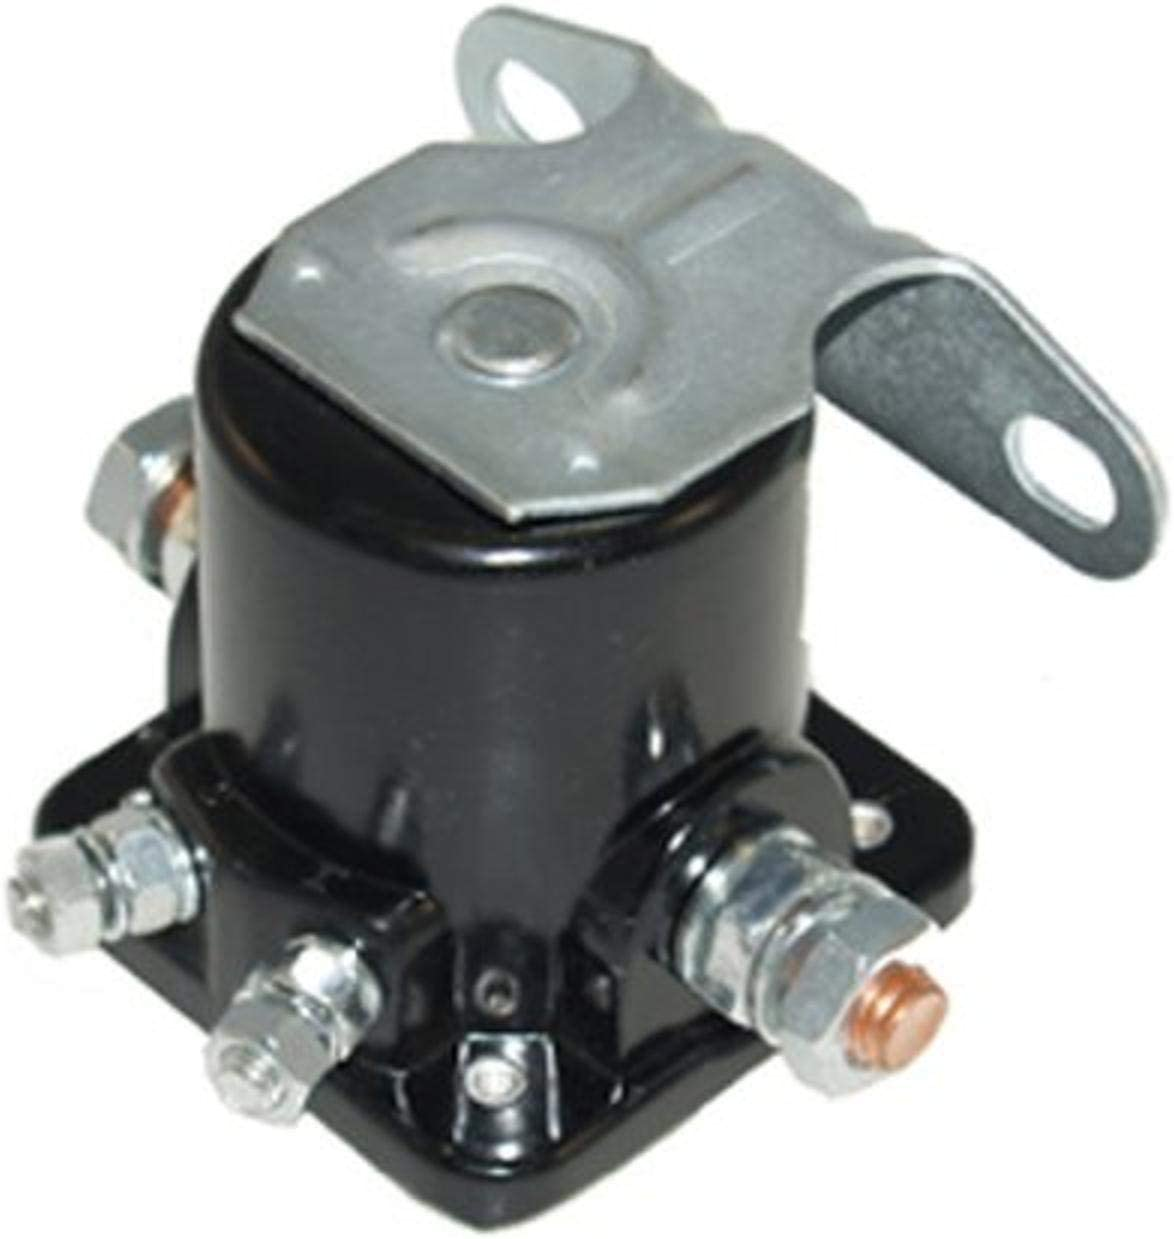 O.E.M. SS3 Starter Solenoid Selling outlet and selling